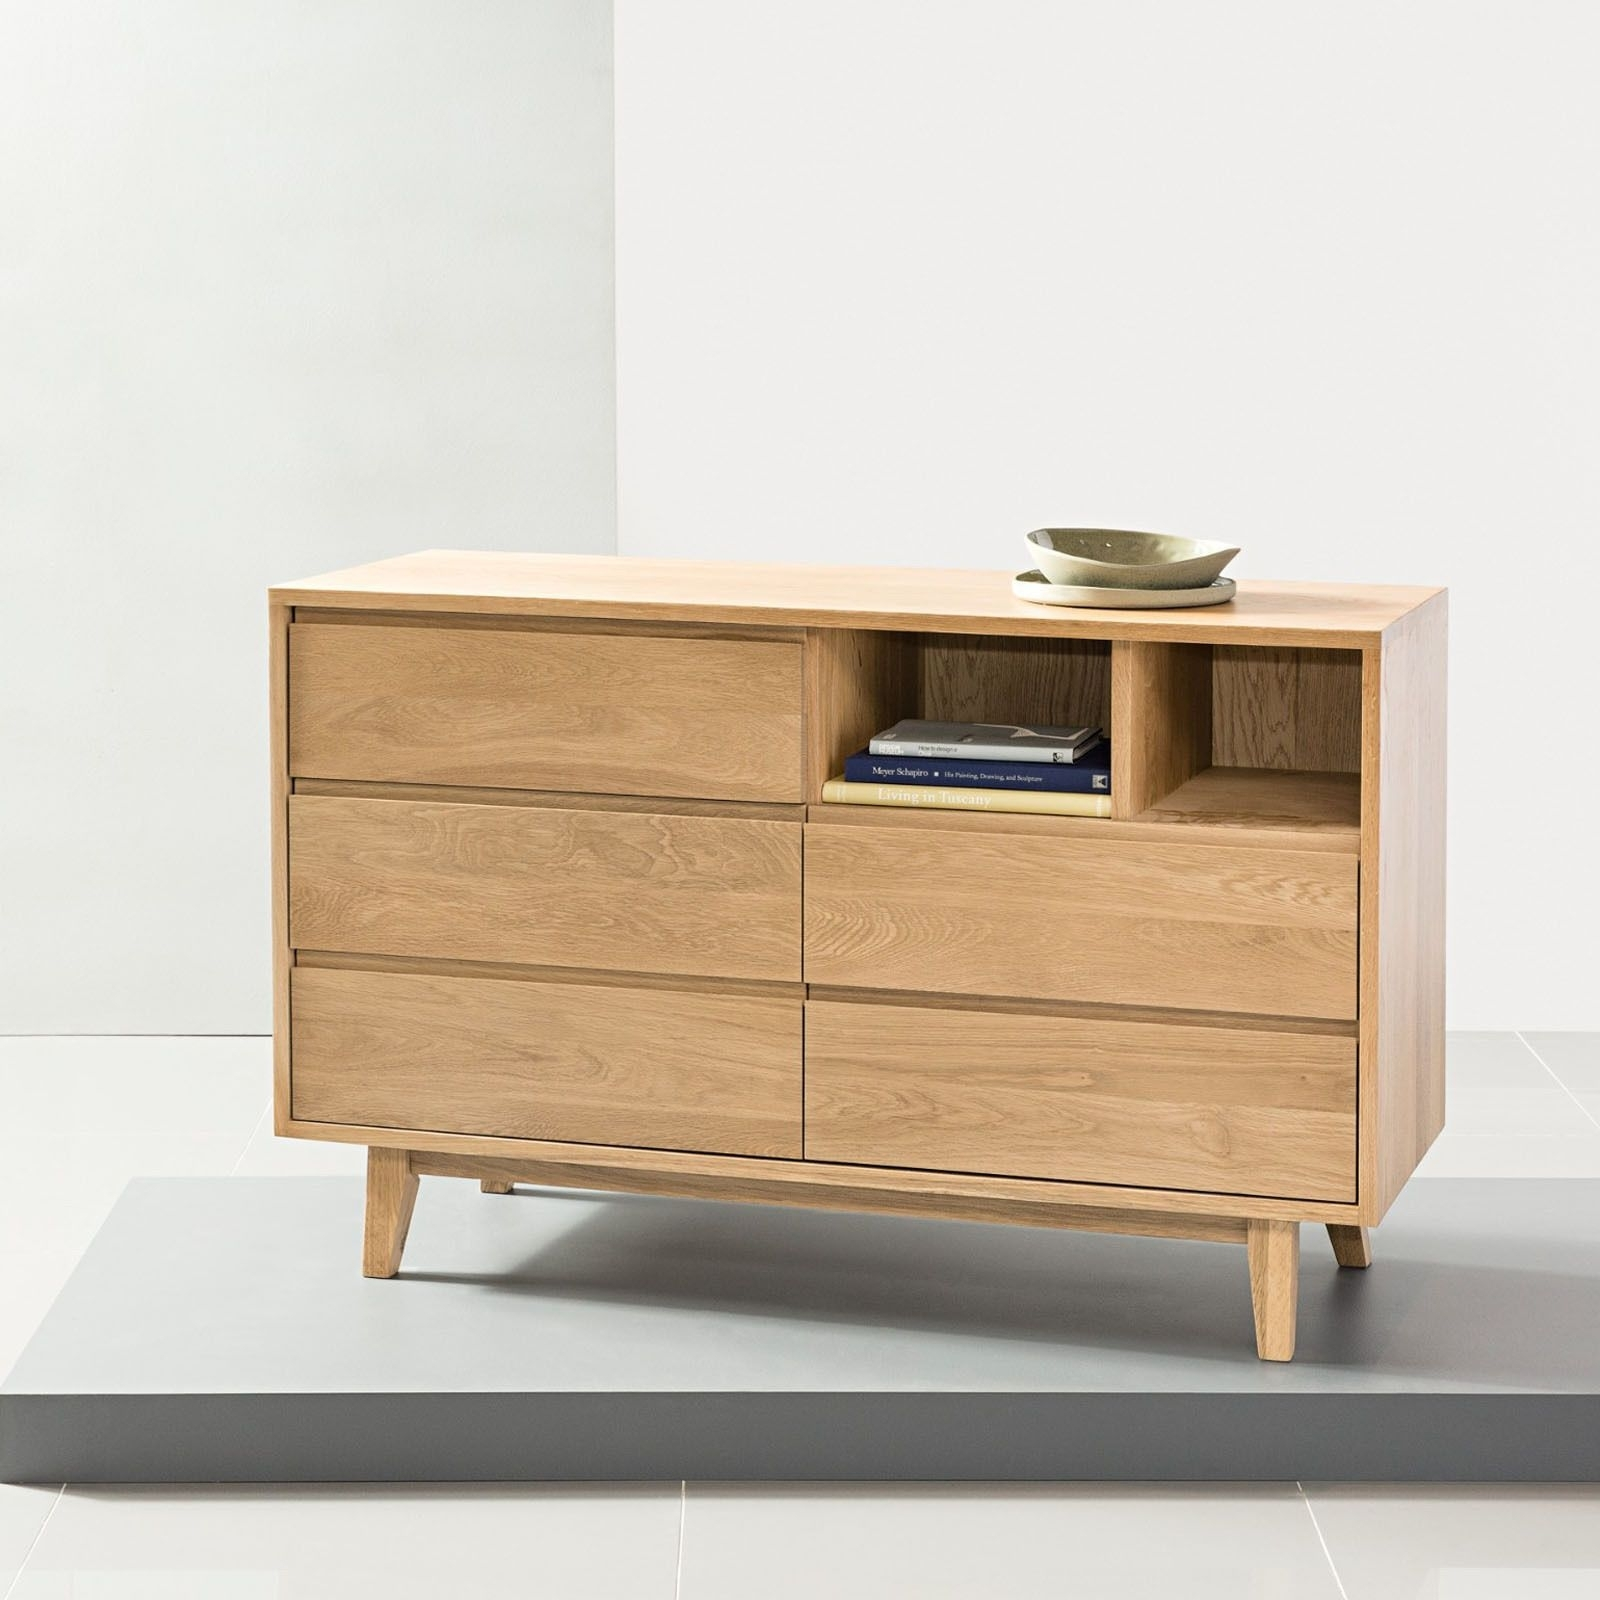 Bastian 5 Drawer Chest - Solid Oak - 120X45X76Cm - Icondesign intended for Tobias 4 Door Sideboards (Image 2 of 30)